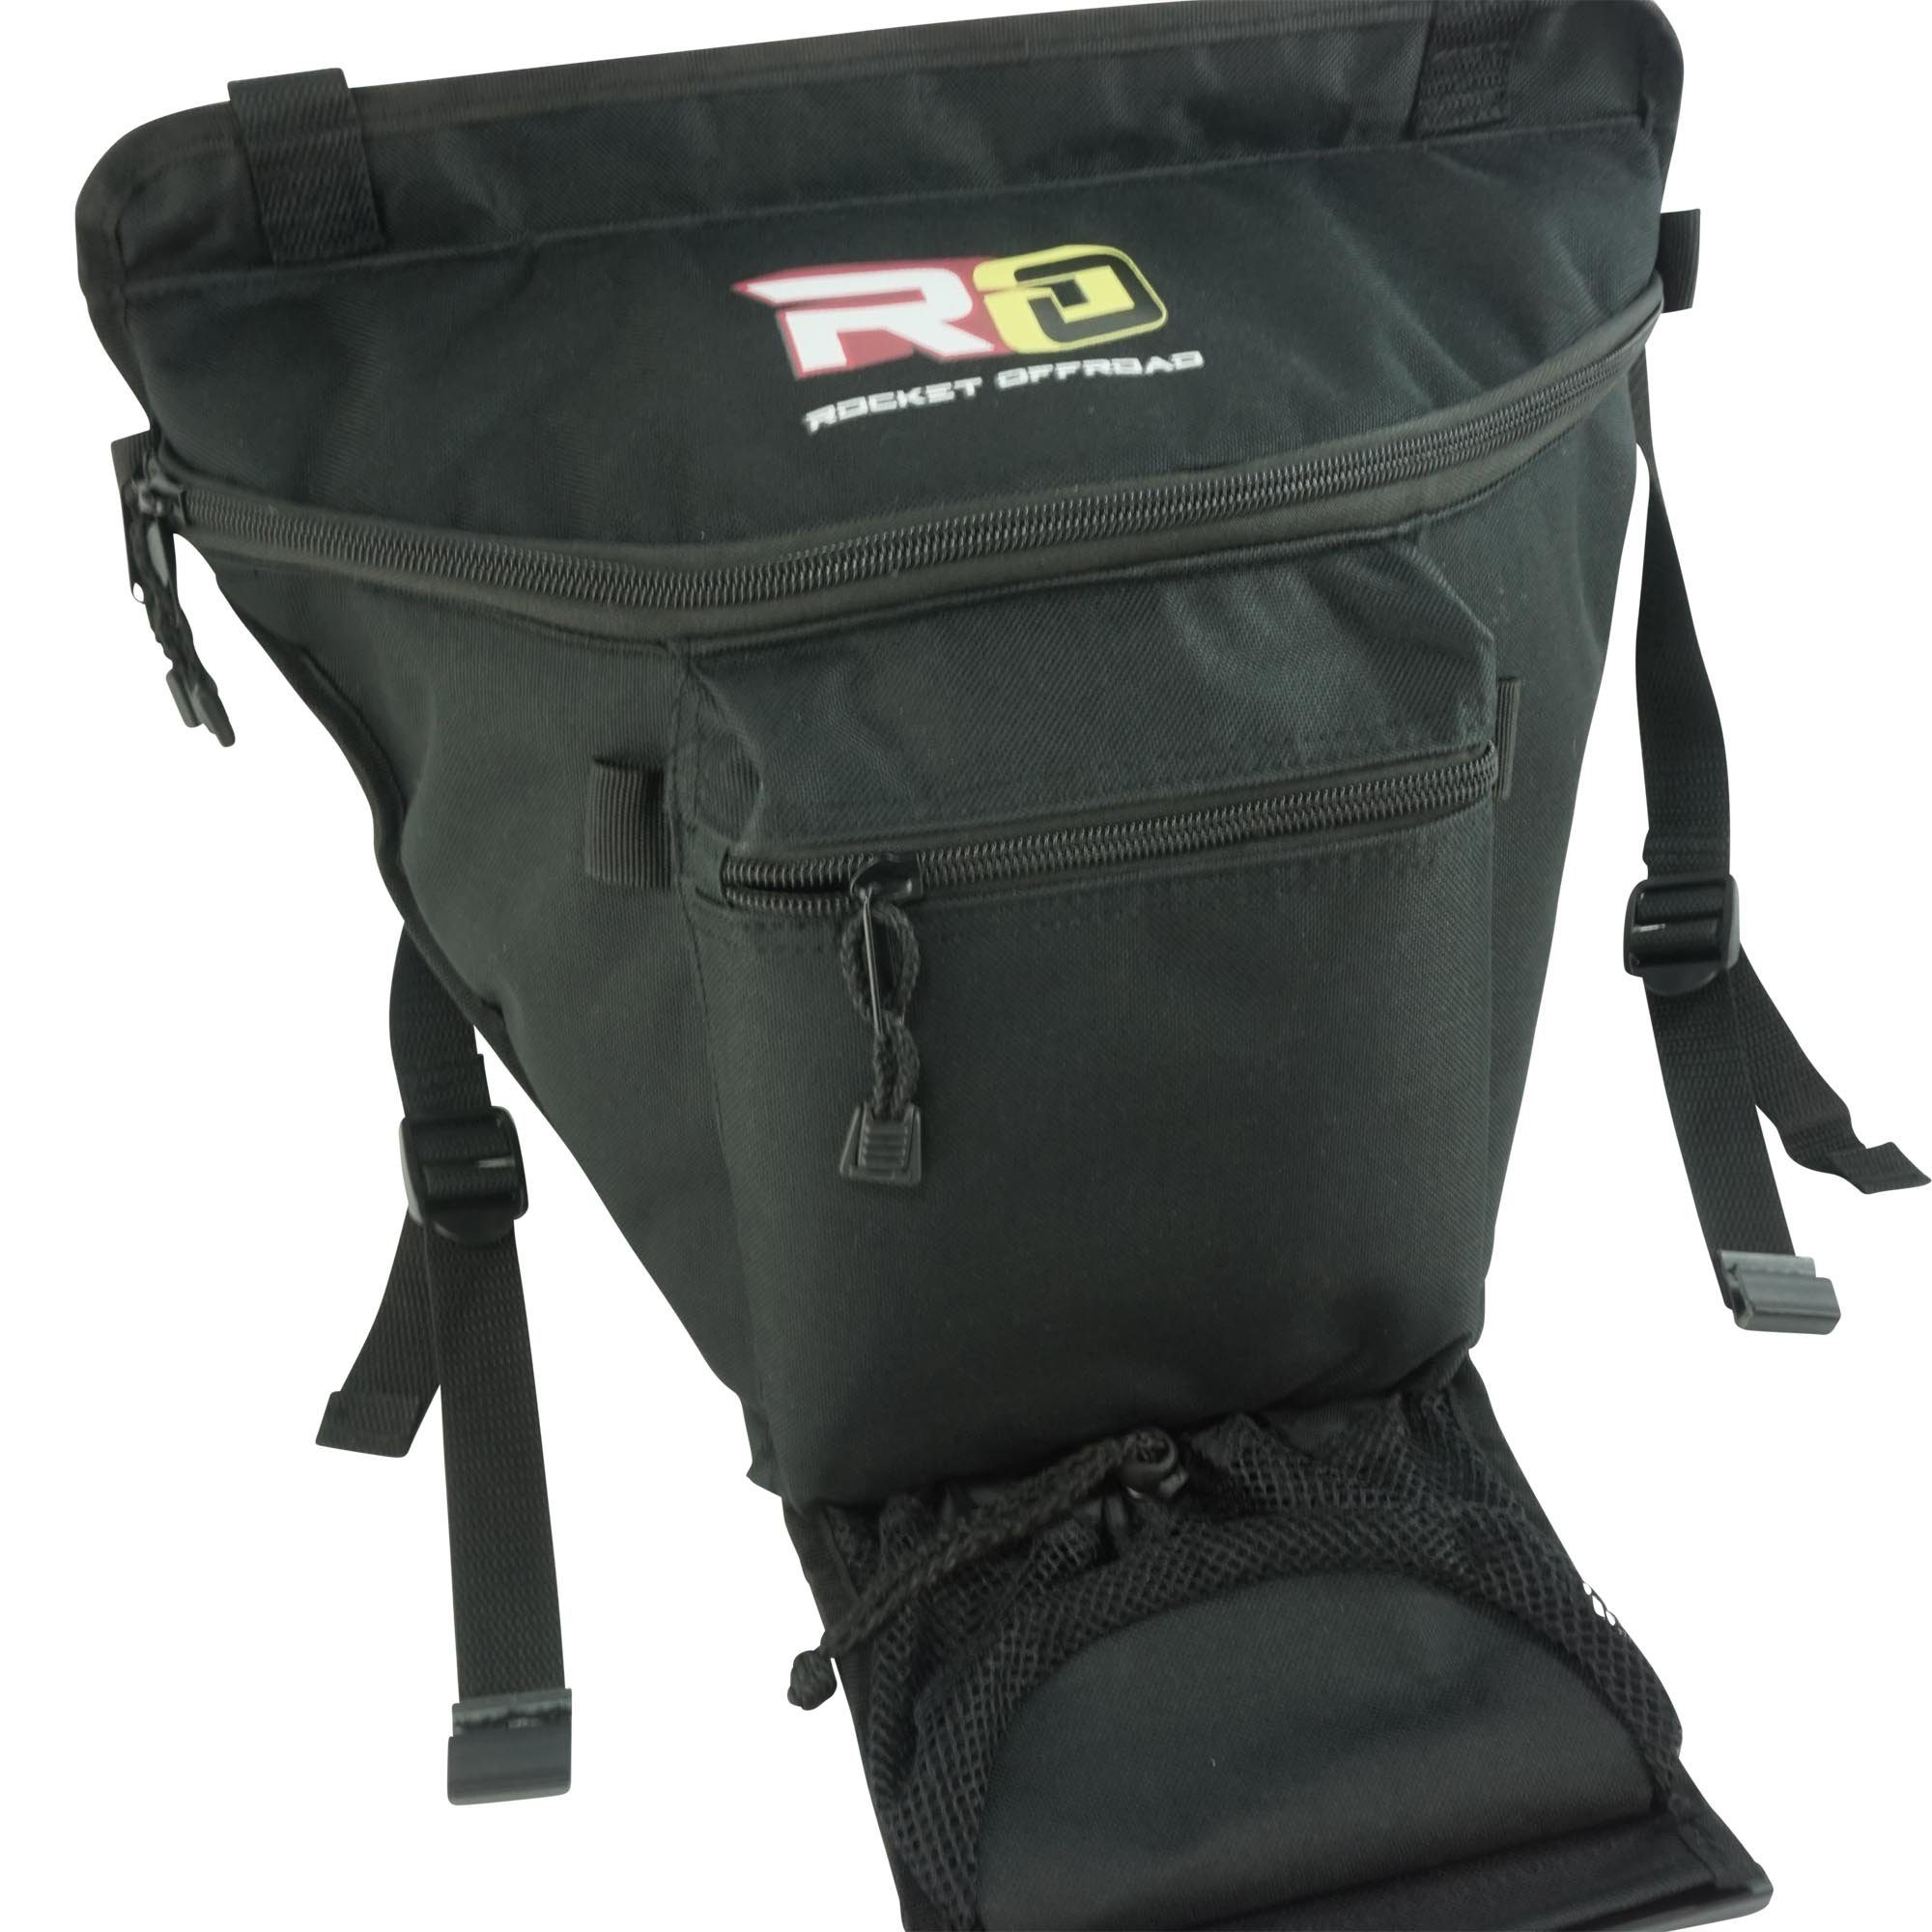 Rocket Offroad RO SB Black UTV Cab Pack for RZR by Rocket Offroad